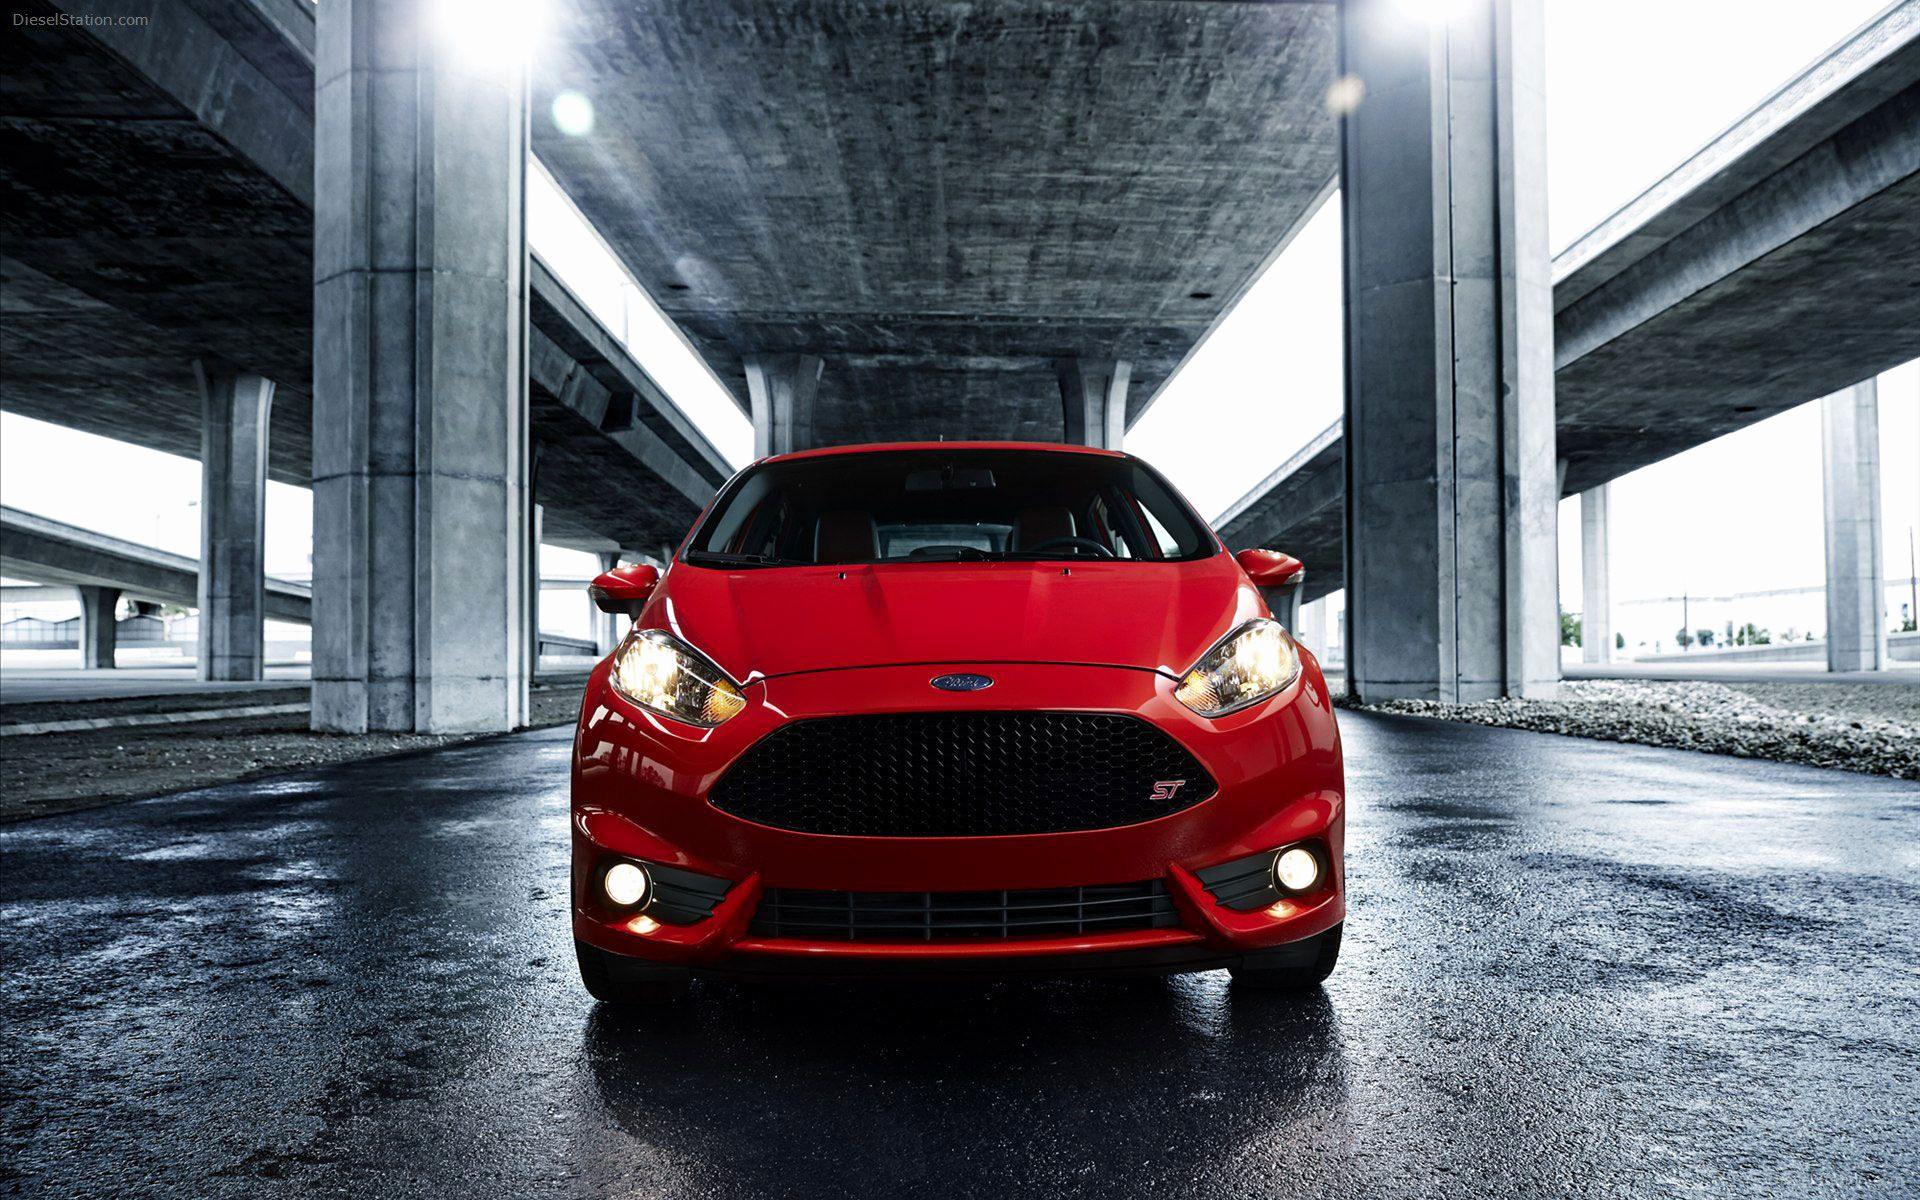 Res: 1920x1200, Simple Car Images Inspirational ford Fiesta St Simple Car Hd Wallpapers In  Hd